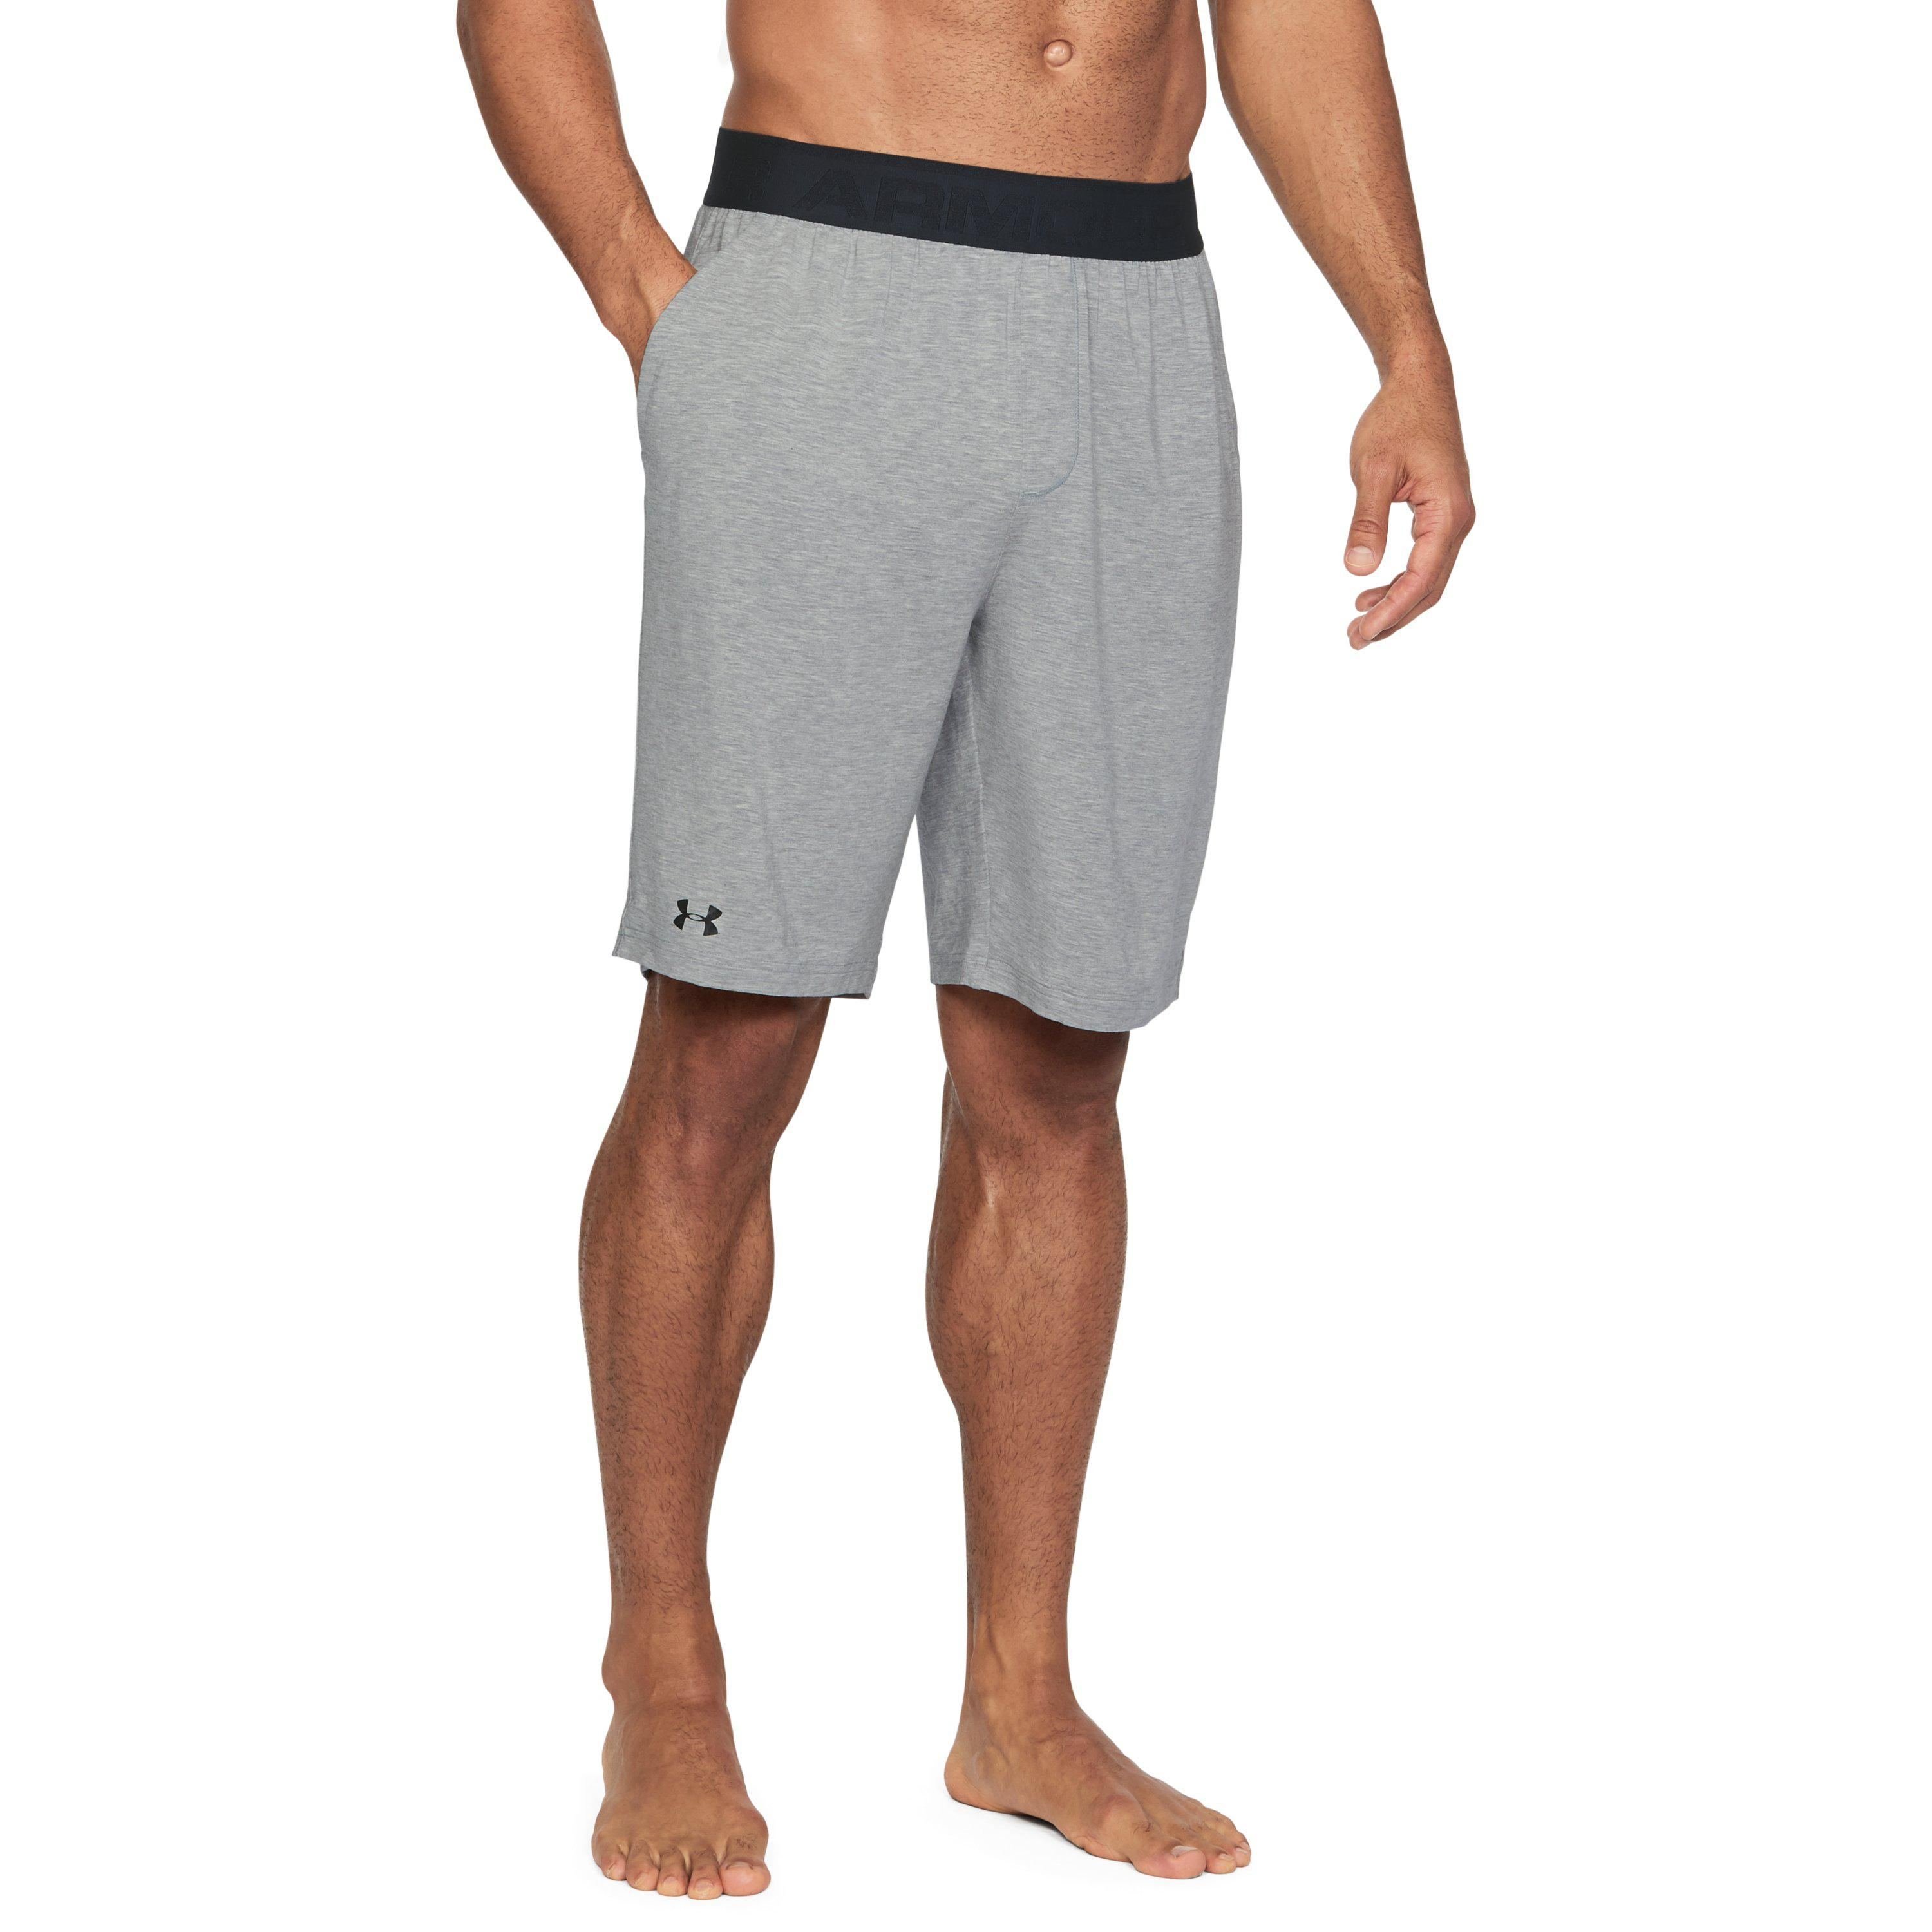 736e9580f2 Under Armour Gray Men's Athlete Recovery Sleepwear Shorts for men